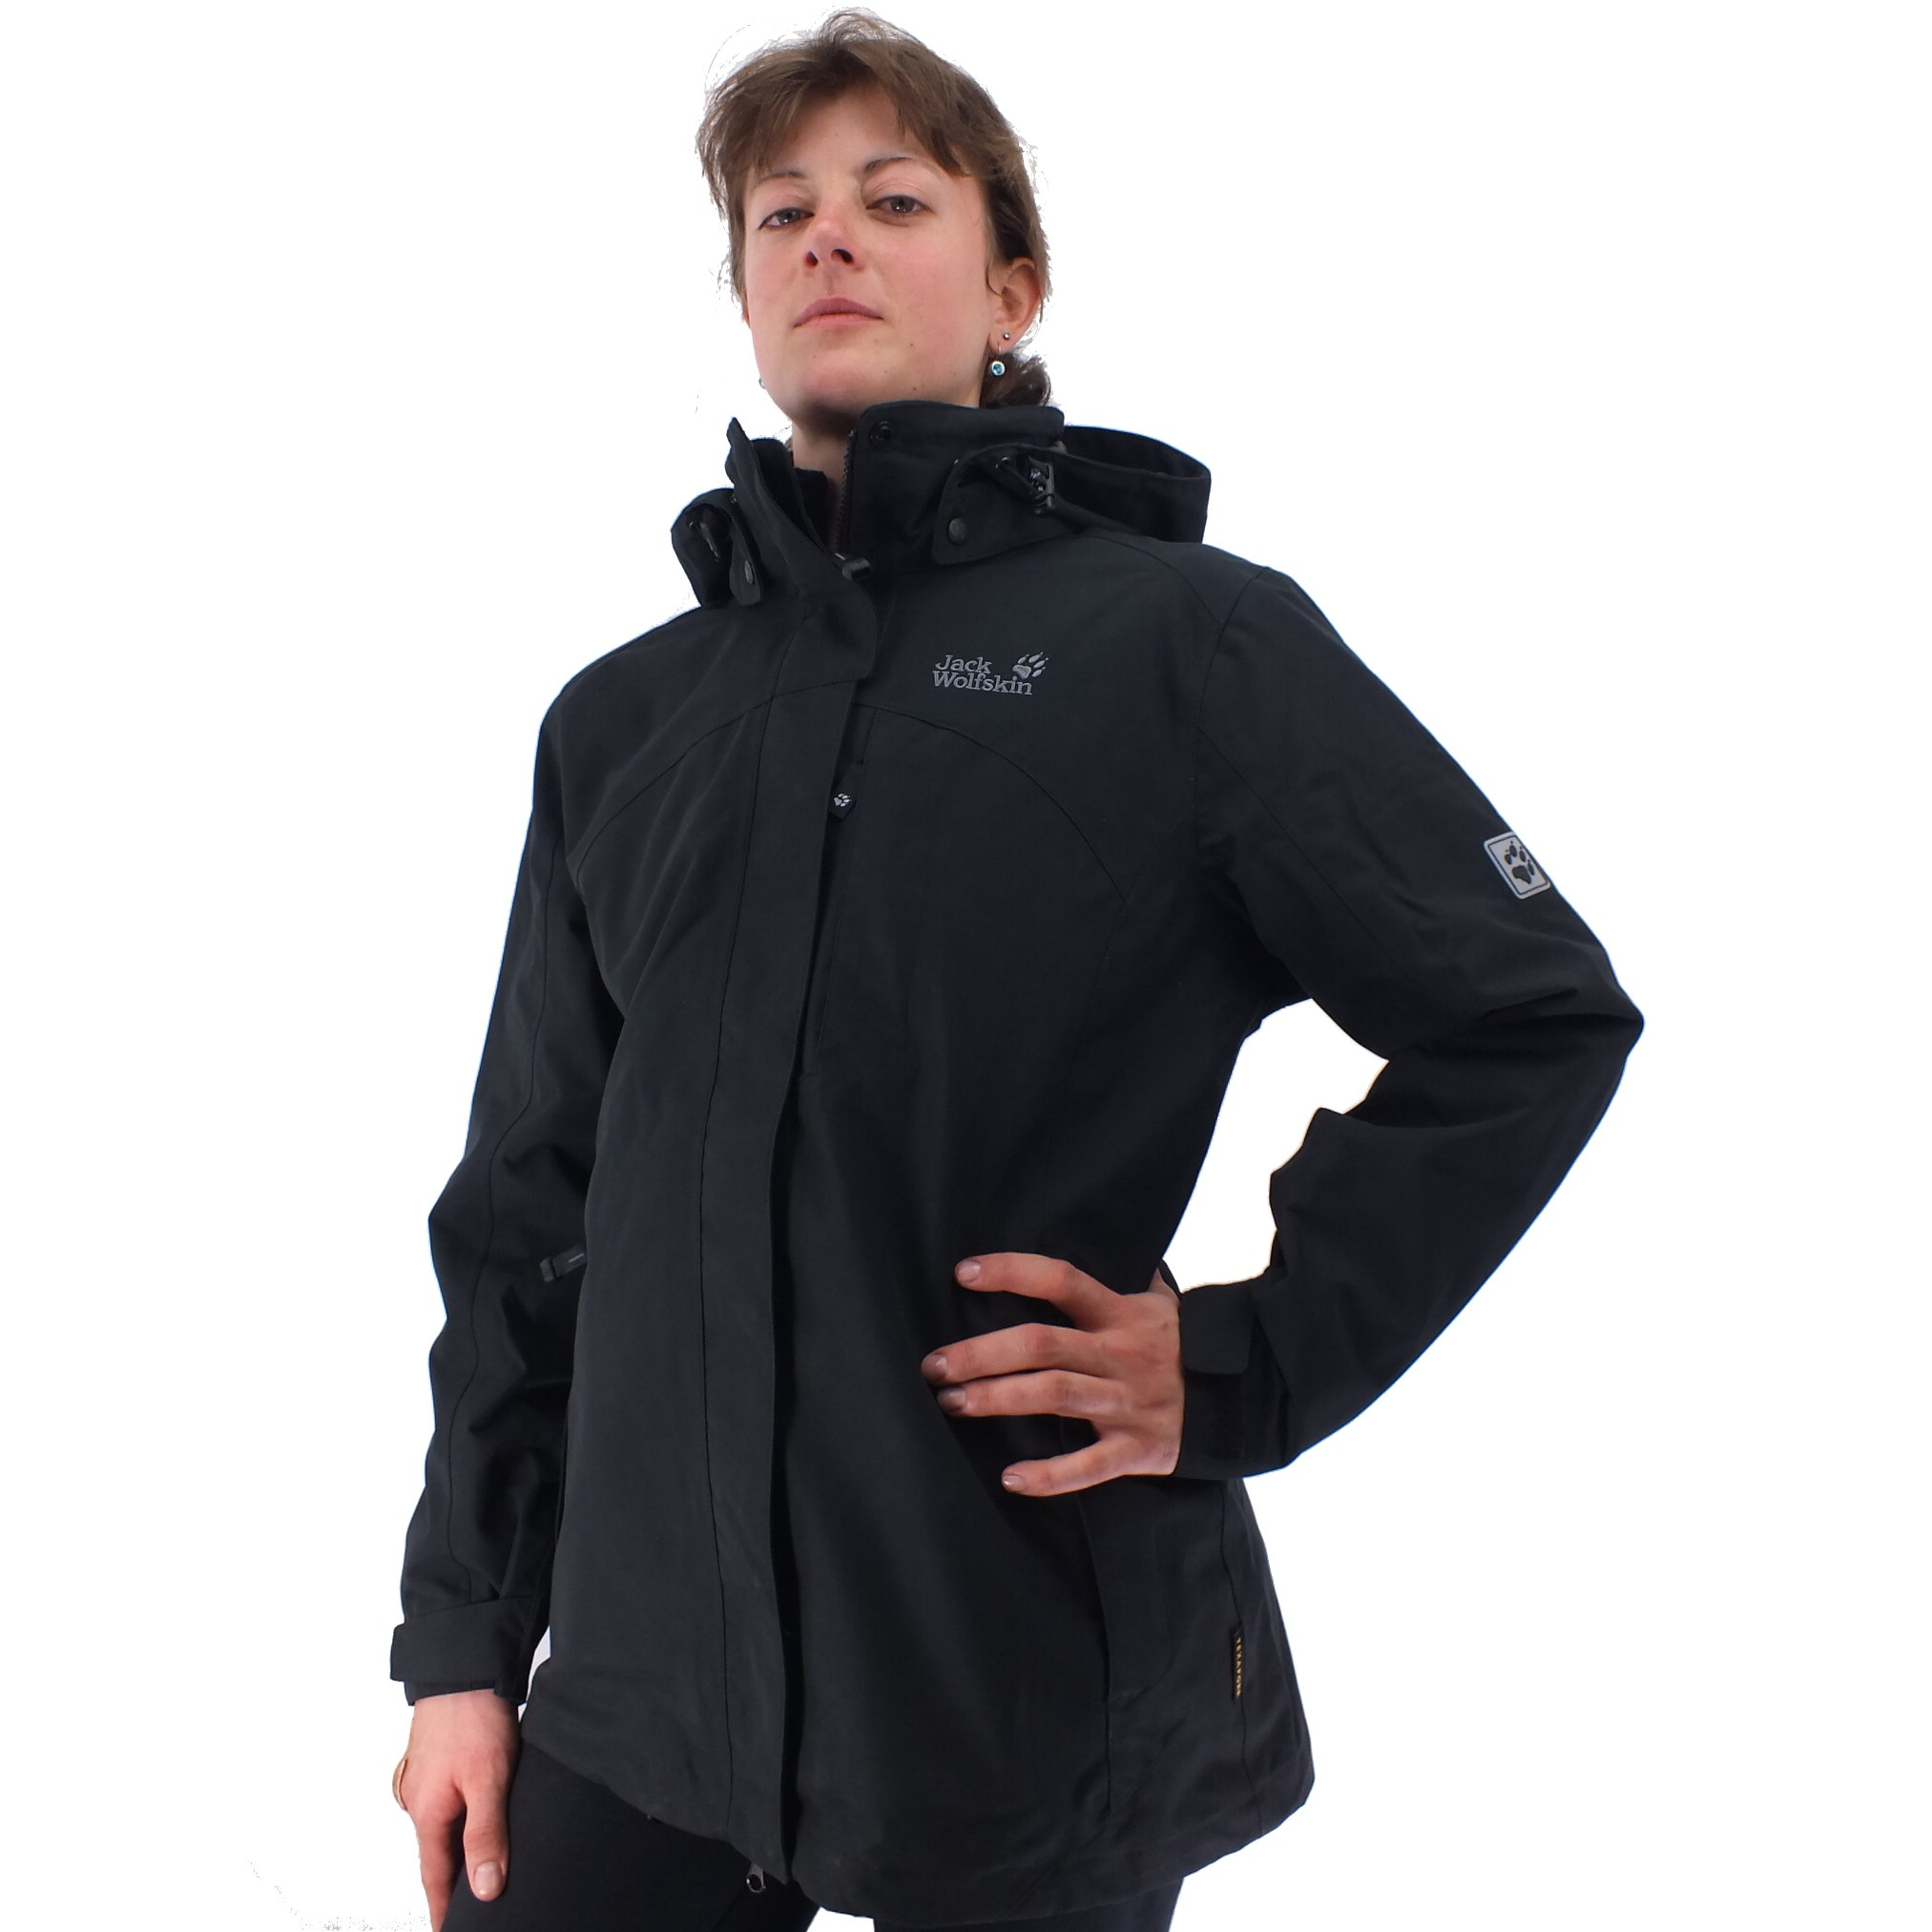 jack wolfskin majestic bay jacke winterjacke damen schwarz texapore ebay. Black Bedroom Furniture Sets. Home Design Ideas